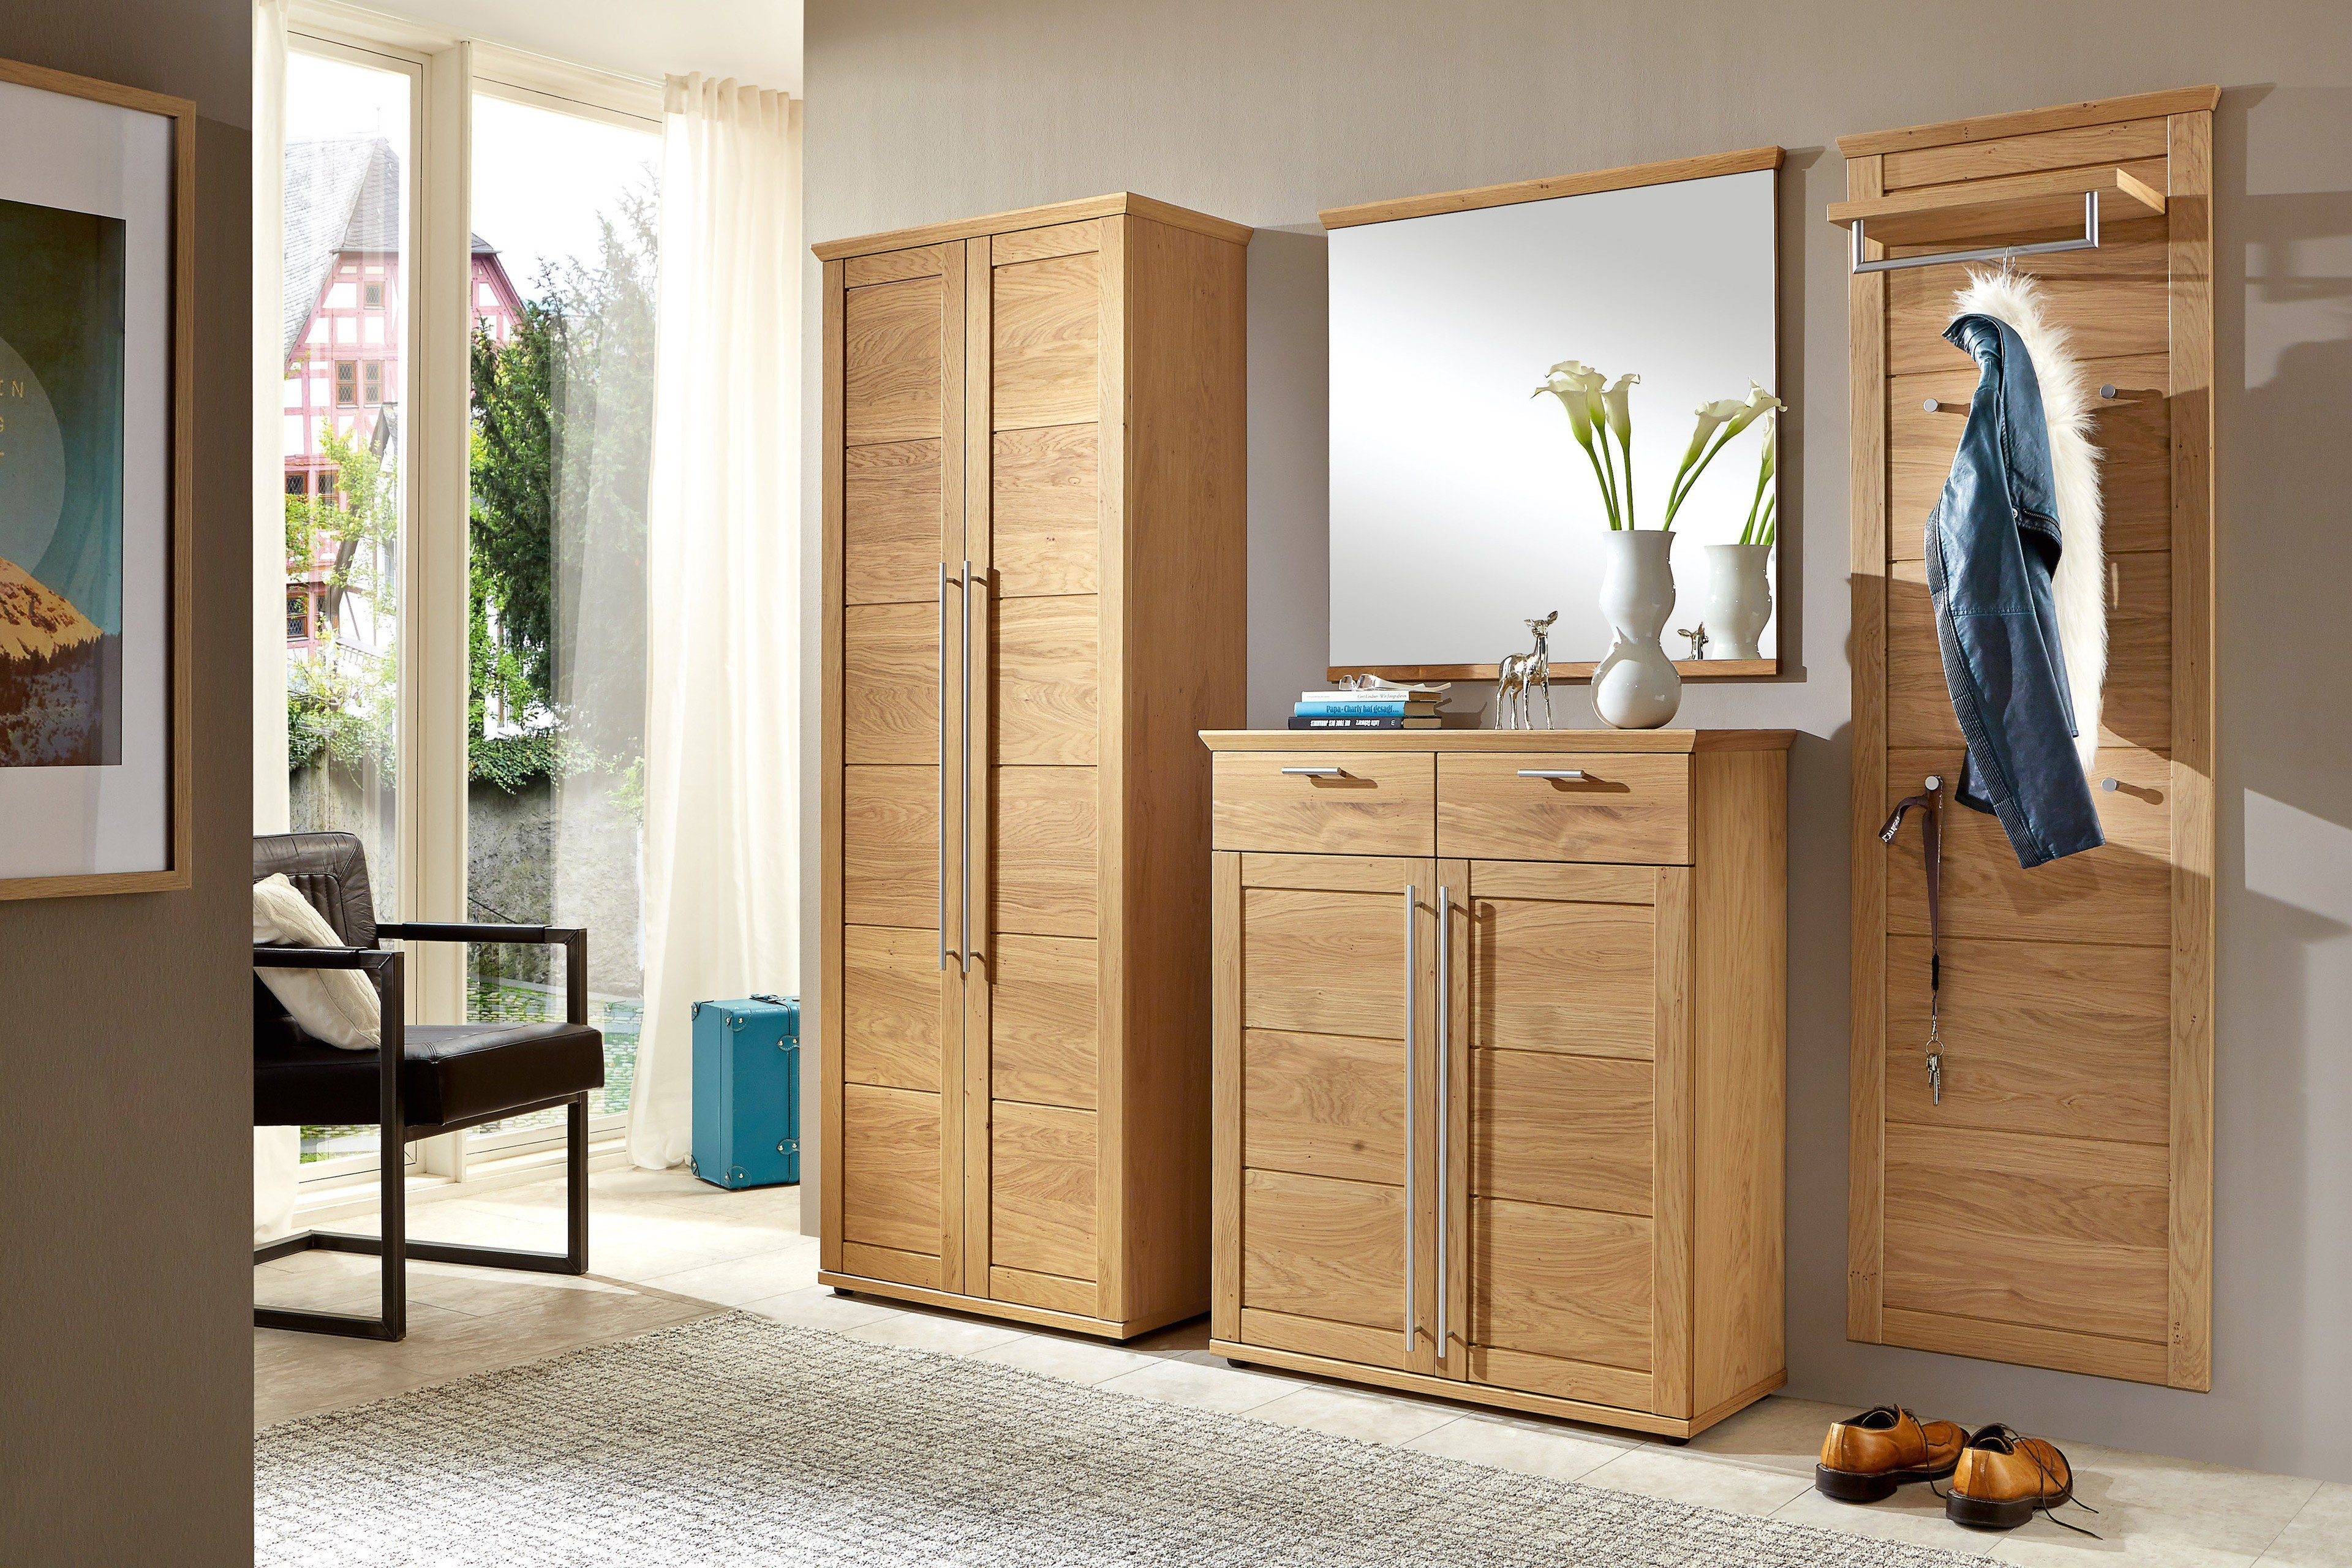 voss m bel garderobe garda voxy 2 teilig m bel letz ihr online shop. Black Bedroom Furniture Sets. Home Design Ideas